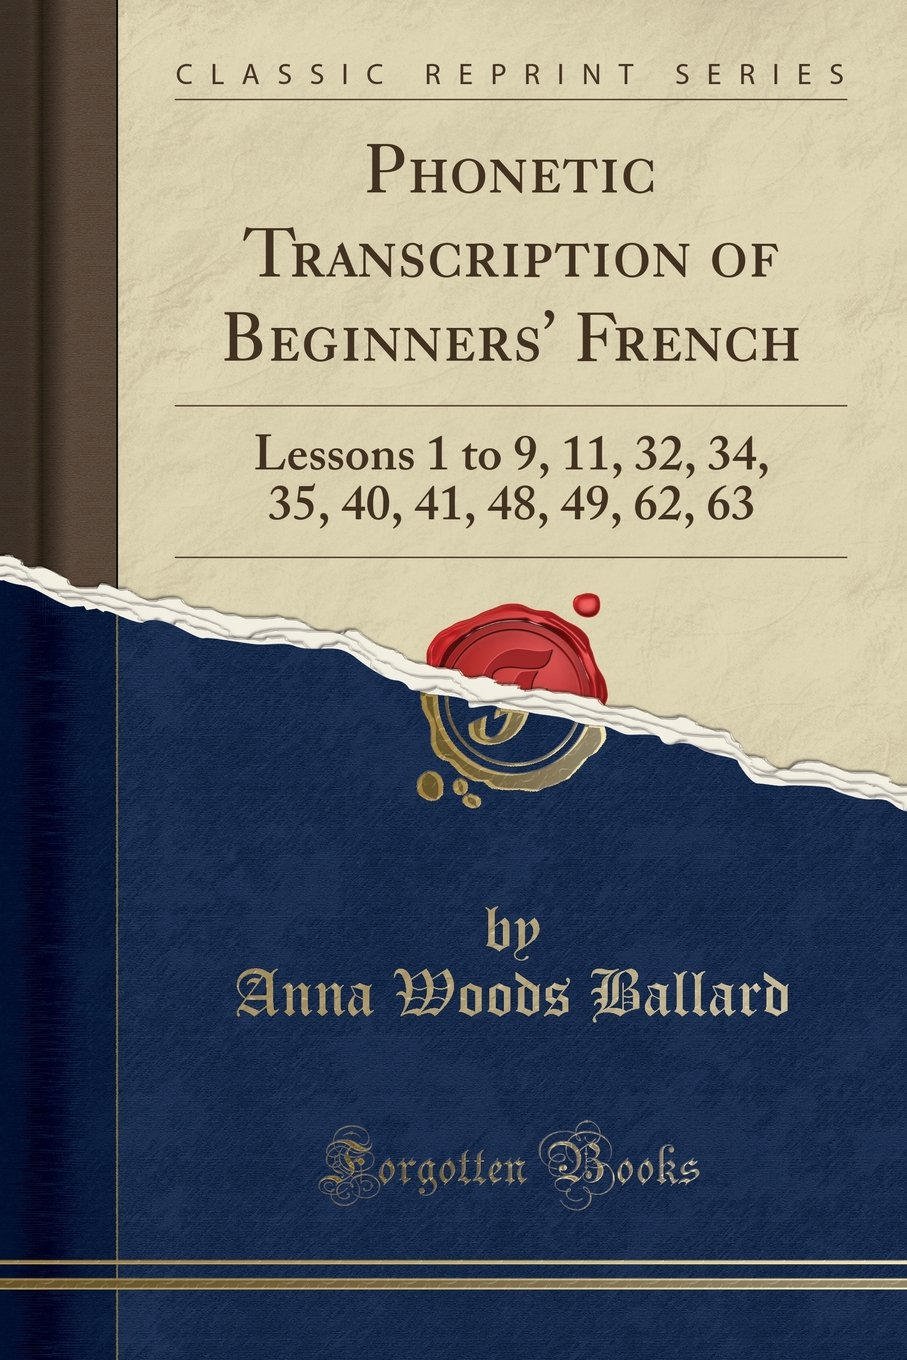 Phonetic Transcription of Beginners' French: Lessons 1 to 9, 11, 32, 34, 35, 40, 41, 48, 49, 62, 63 (Classic Reprint) ebook